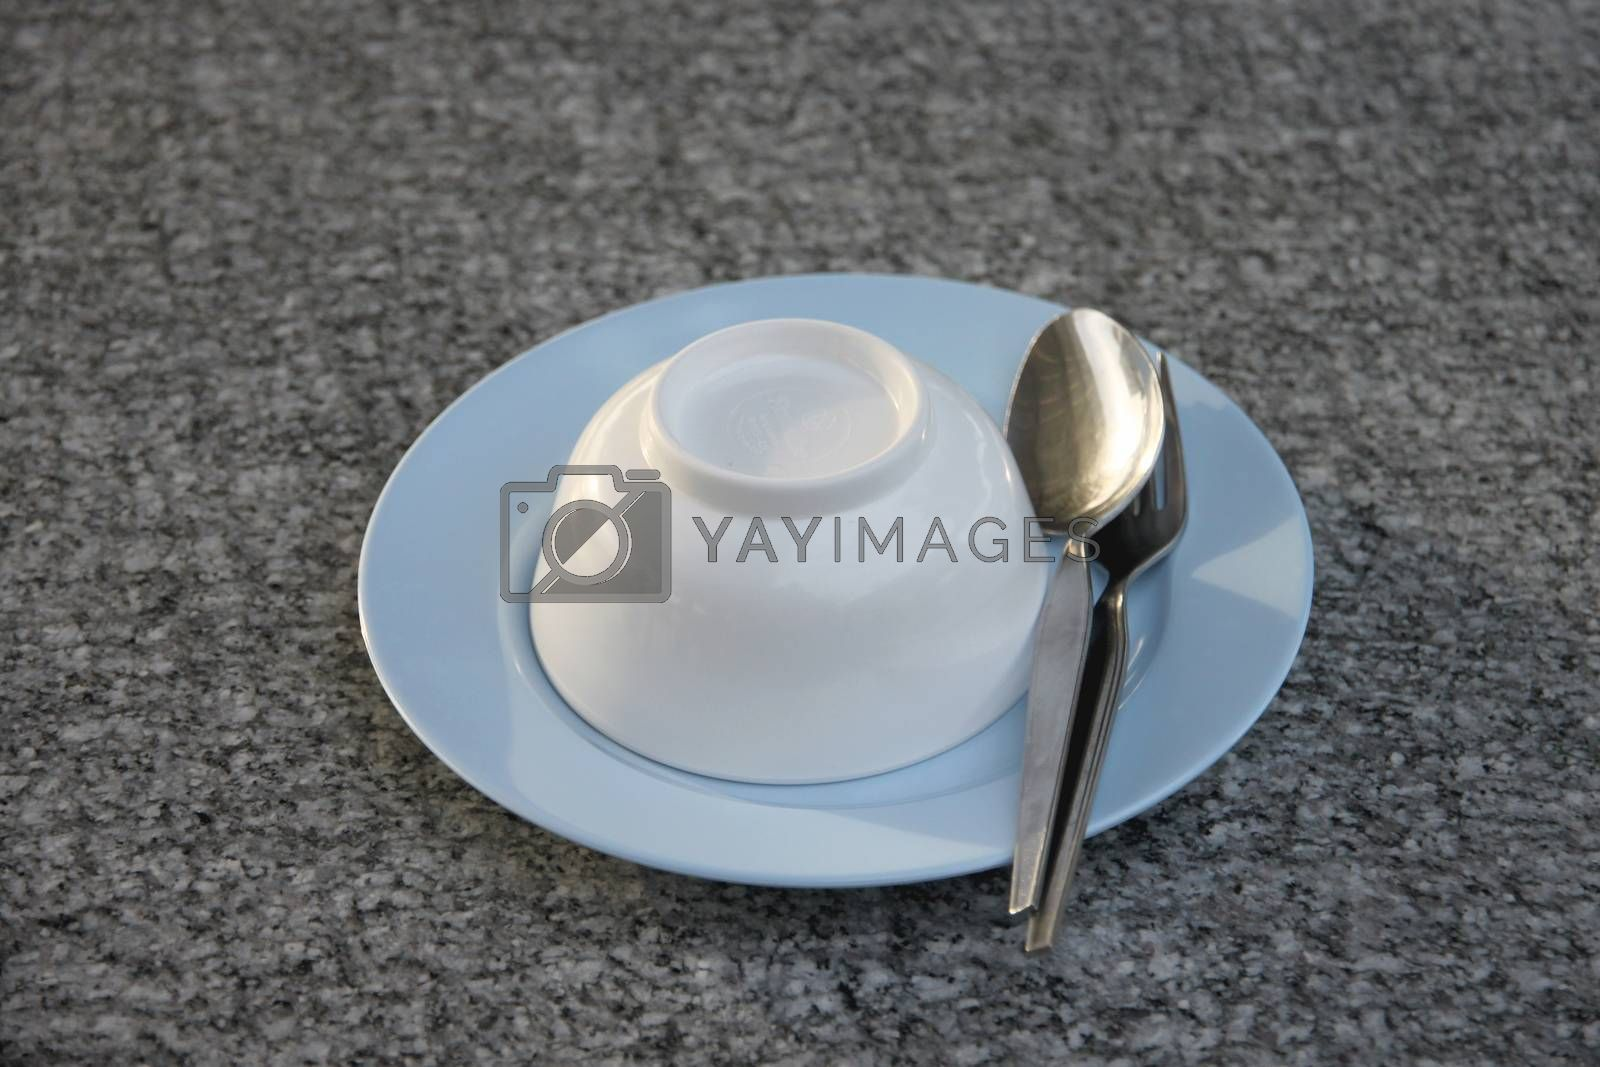 Plate and spoon on table in a restaurant.